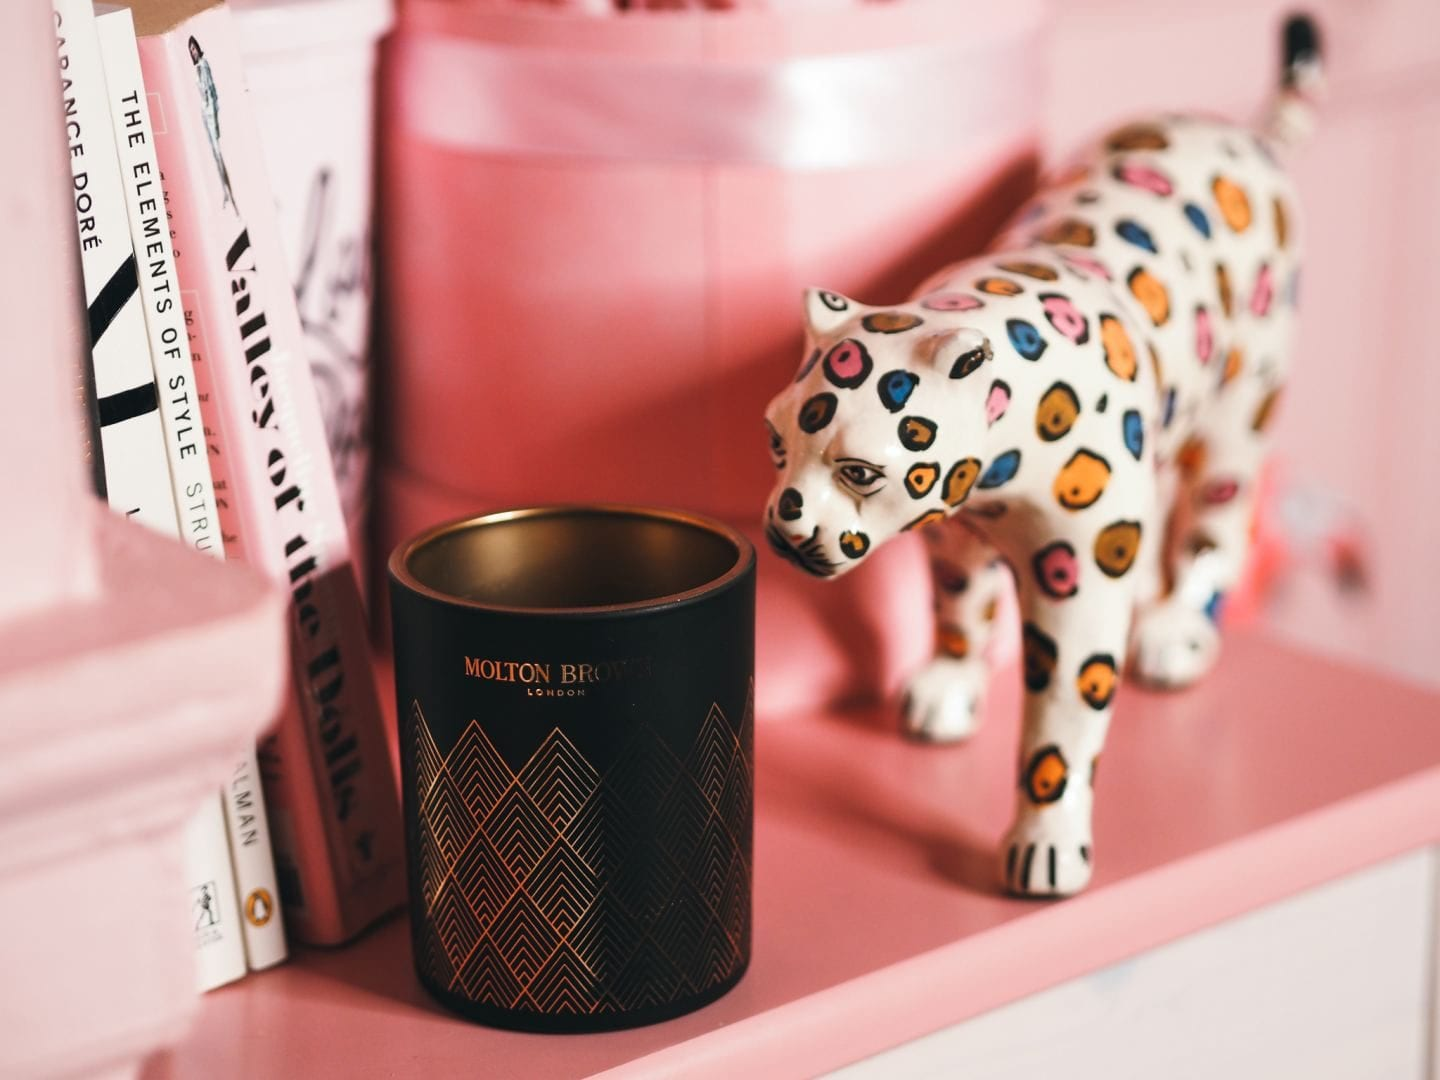 Molton Brown 'Bizarre Brandy' candle limited edition for christmas 2019